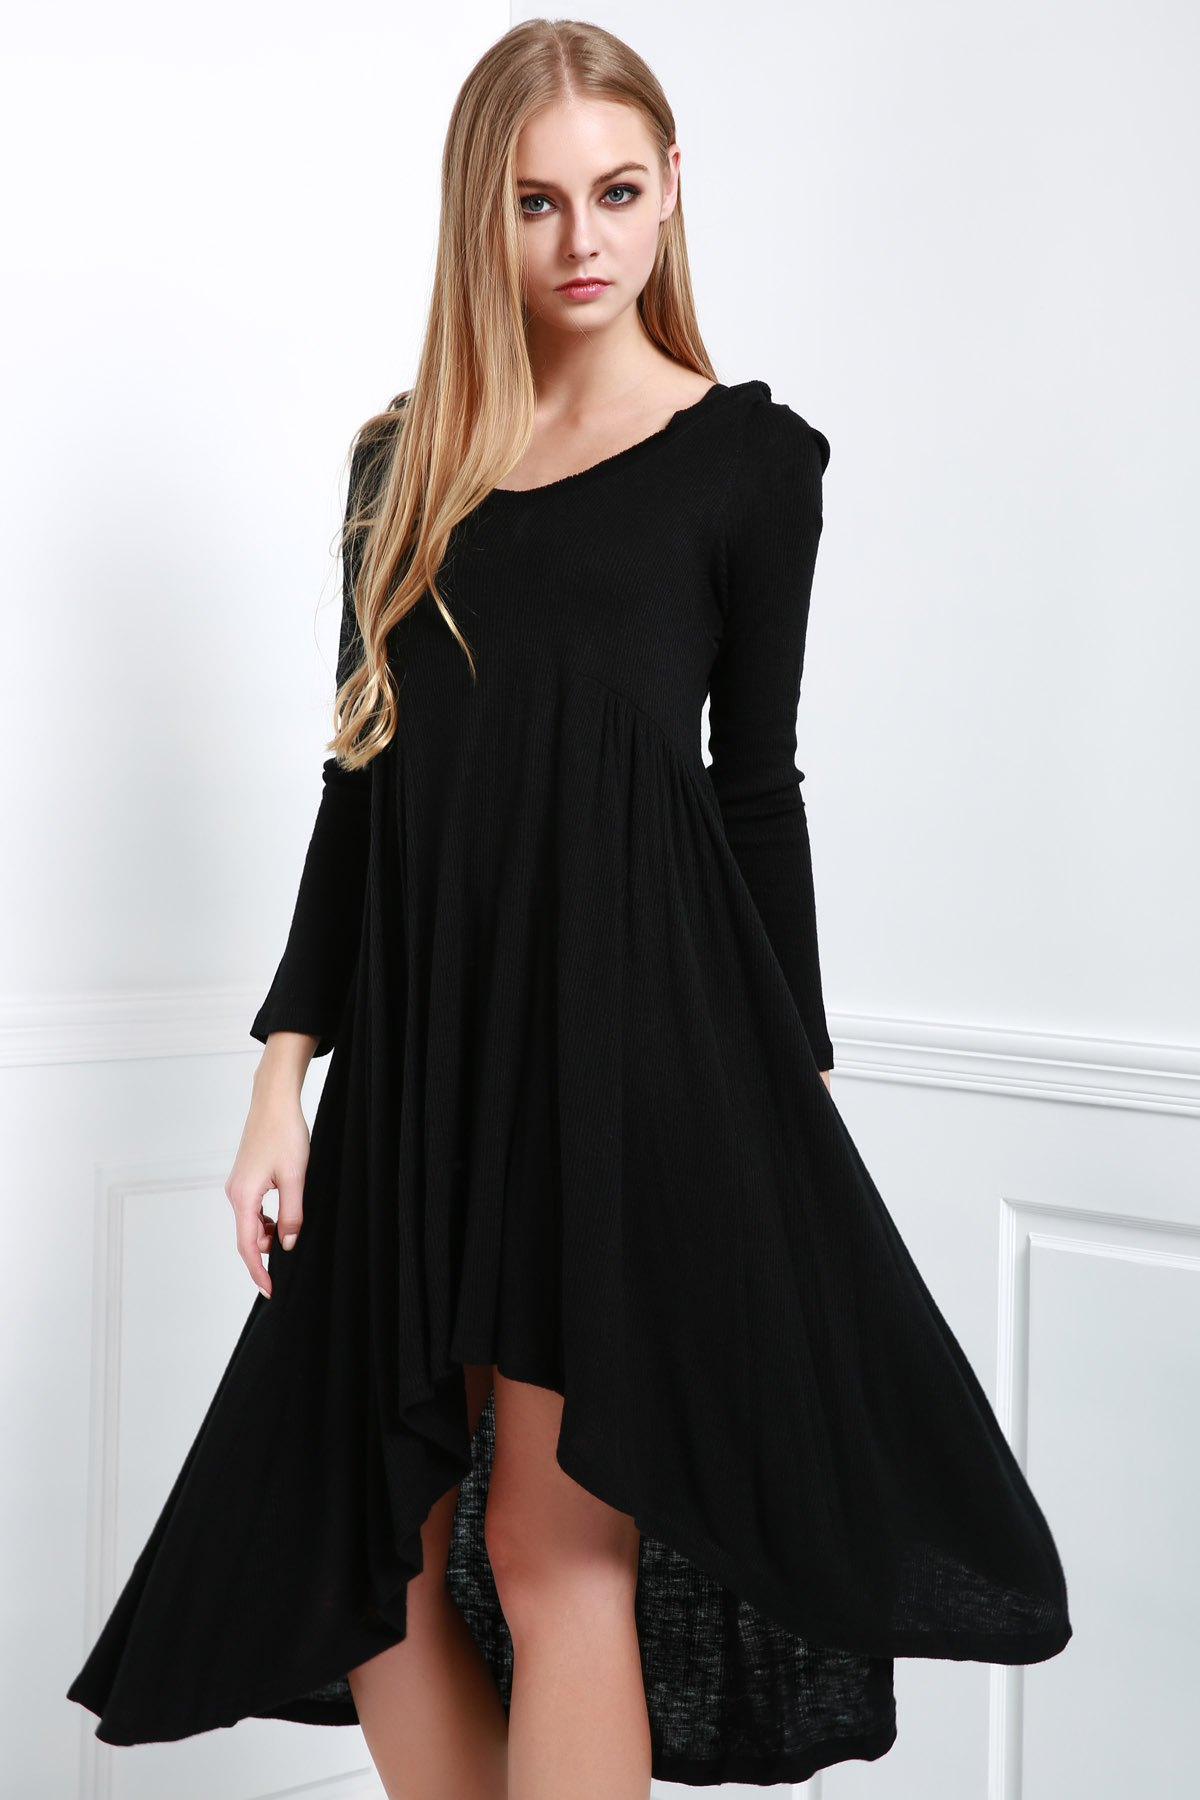 Hooded Long Sleeve Solid Color Dress